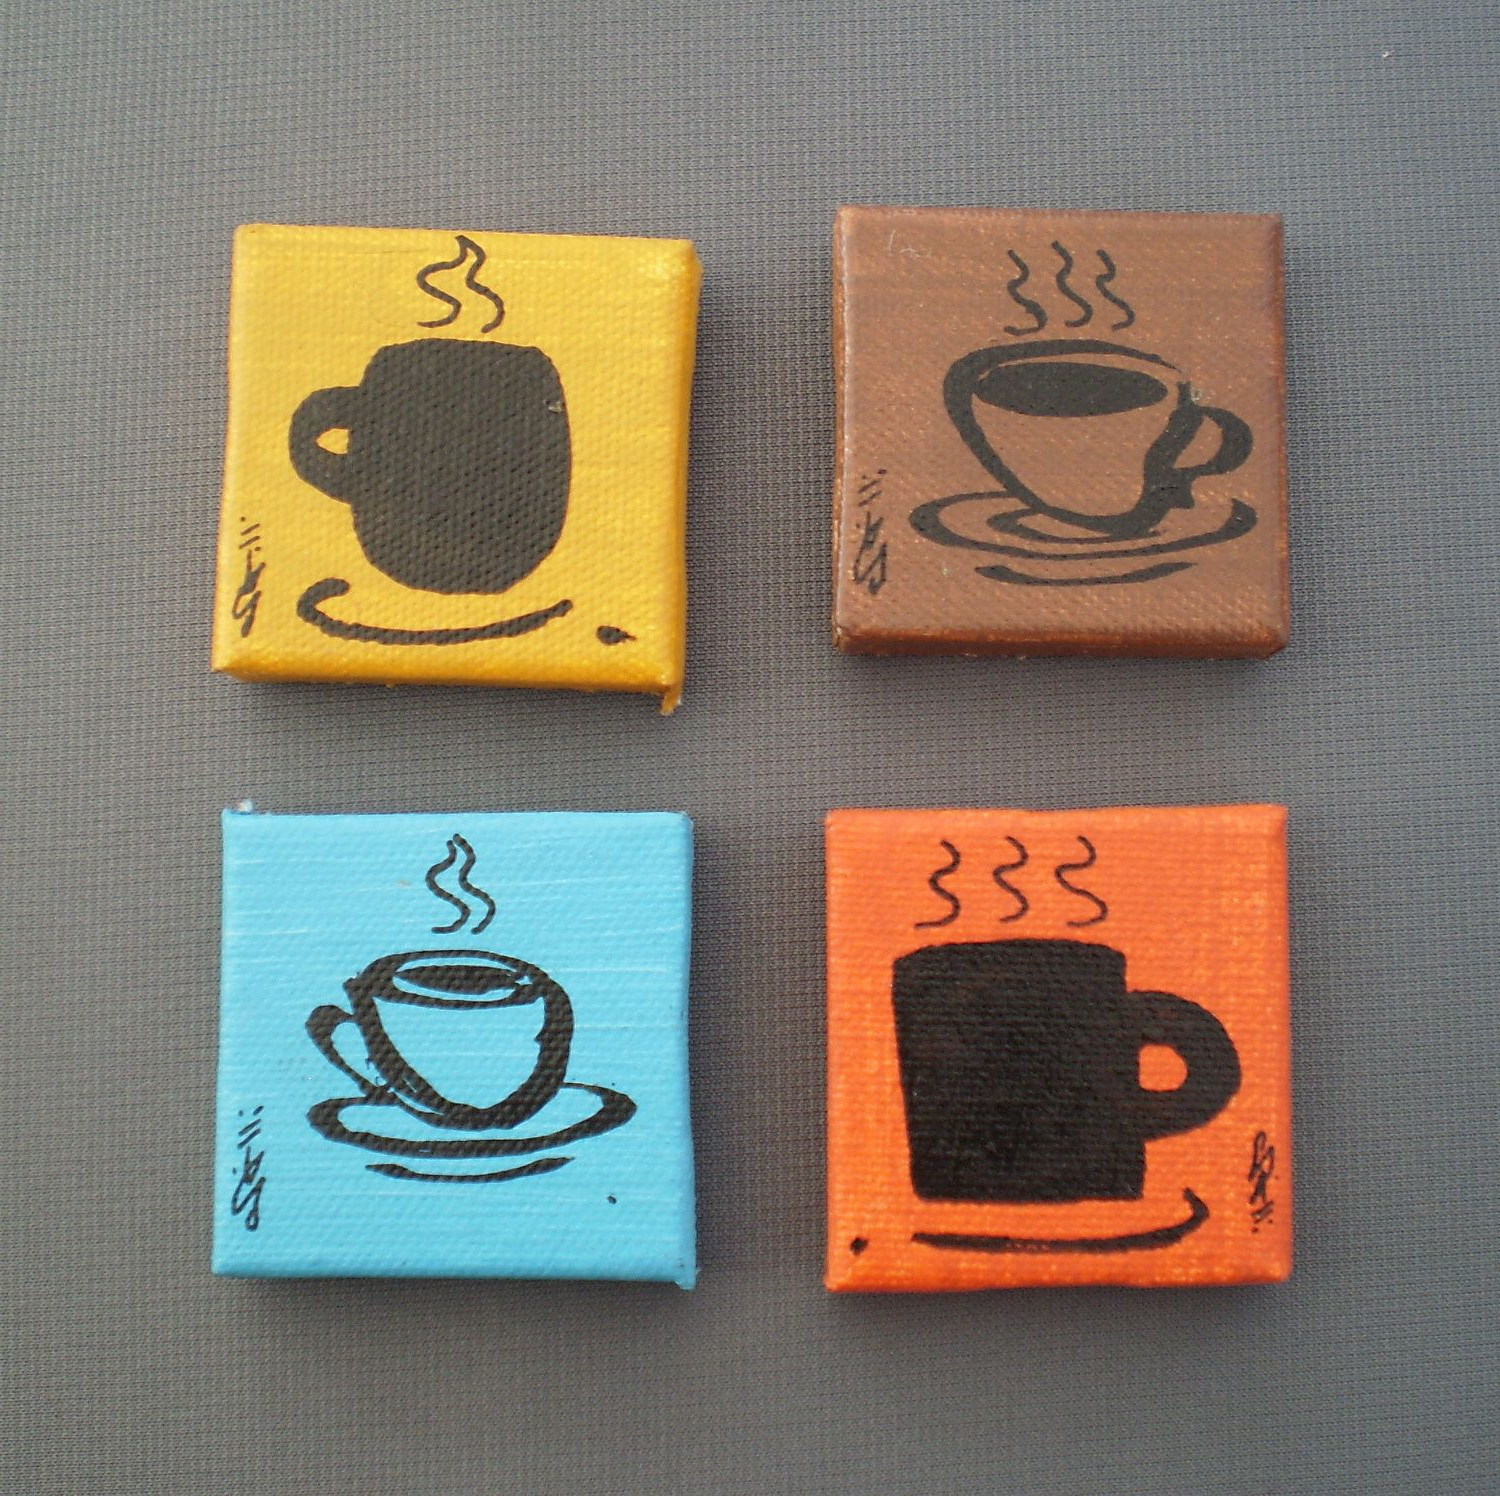 Cuadros De Cocina Kvdd Cuadros Para Cocina Decoracià N Kitchen Art Kitchen Y Decor